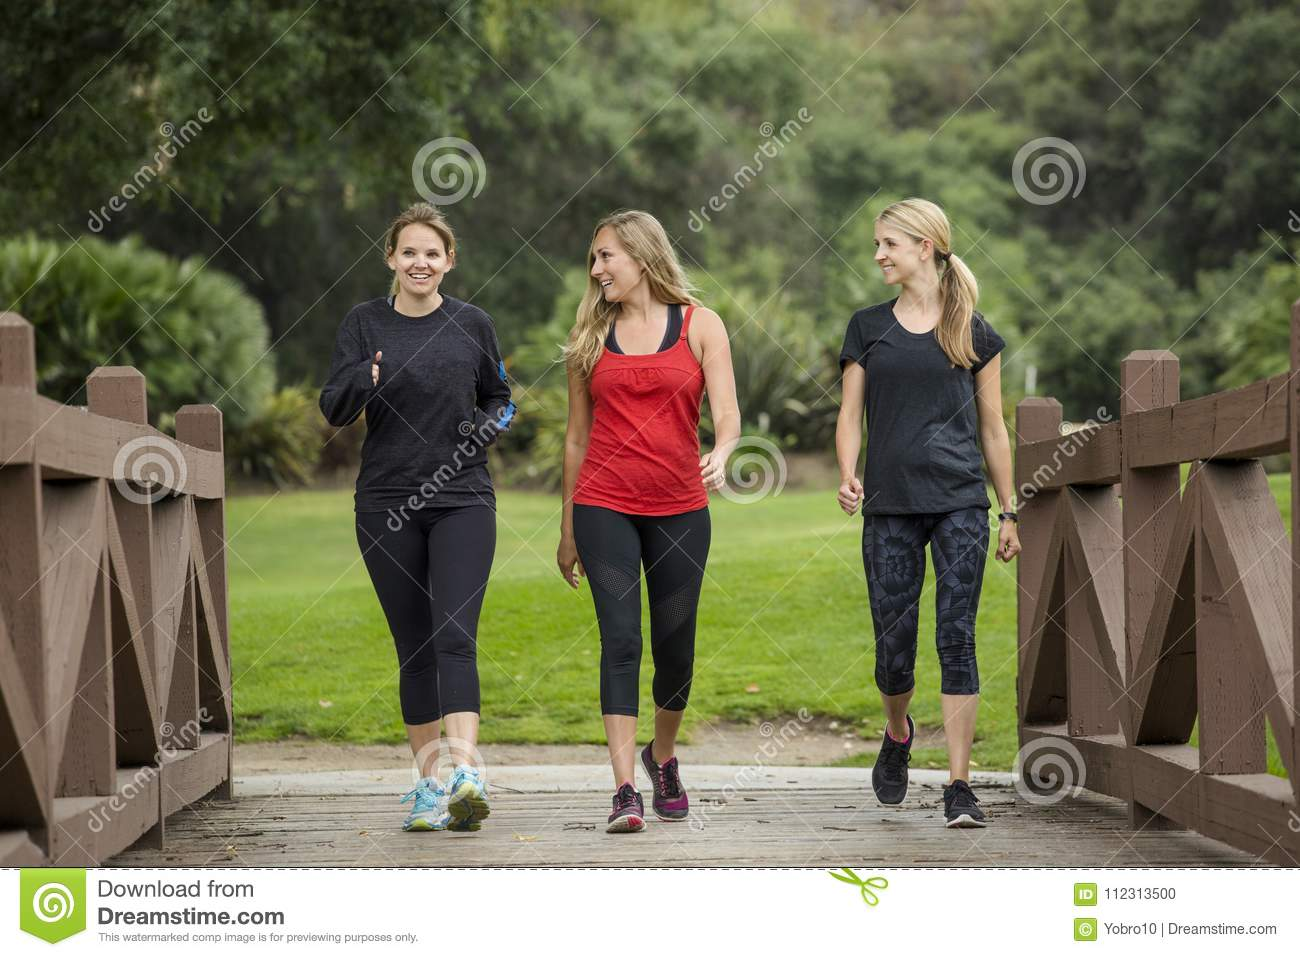 Group women in their 30s walking together in the outdoors.